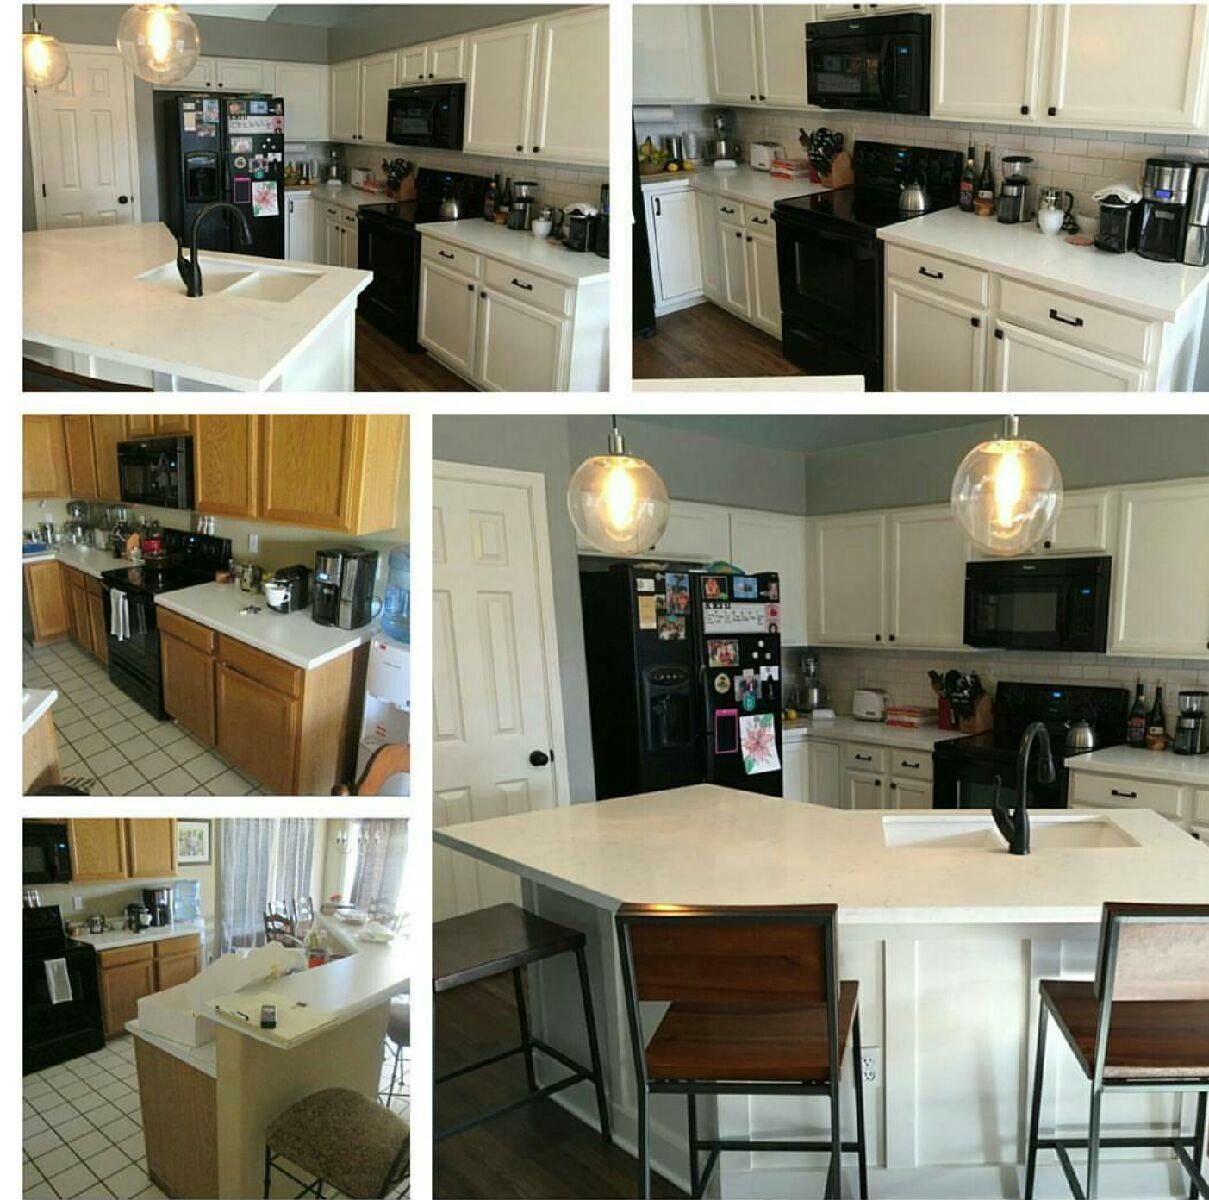 Kitchen Remodel Before & After Pictures. Remodeled By